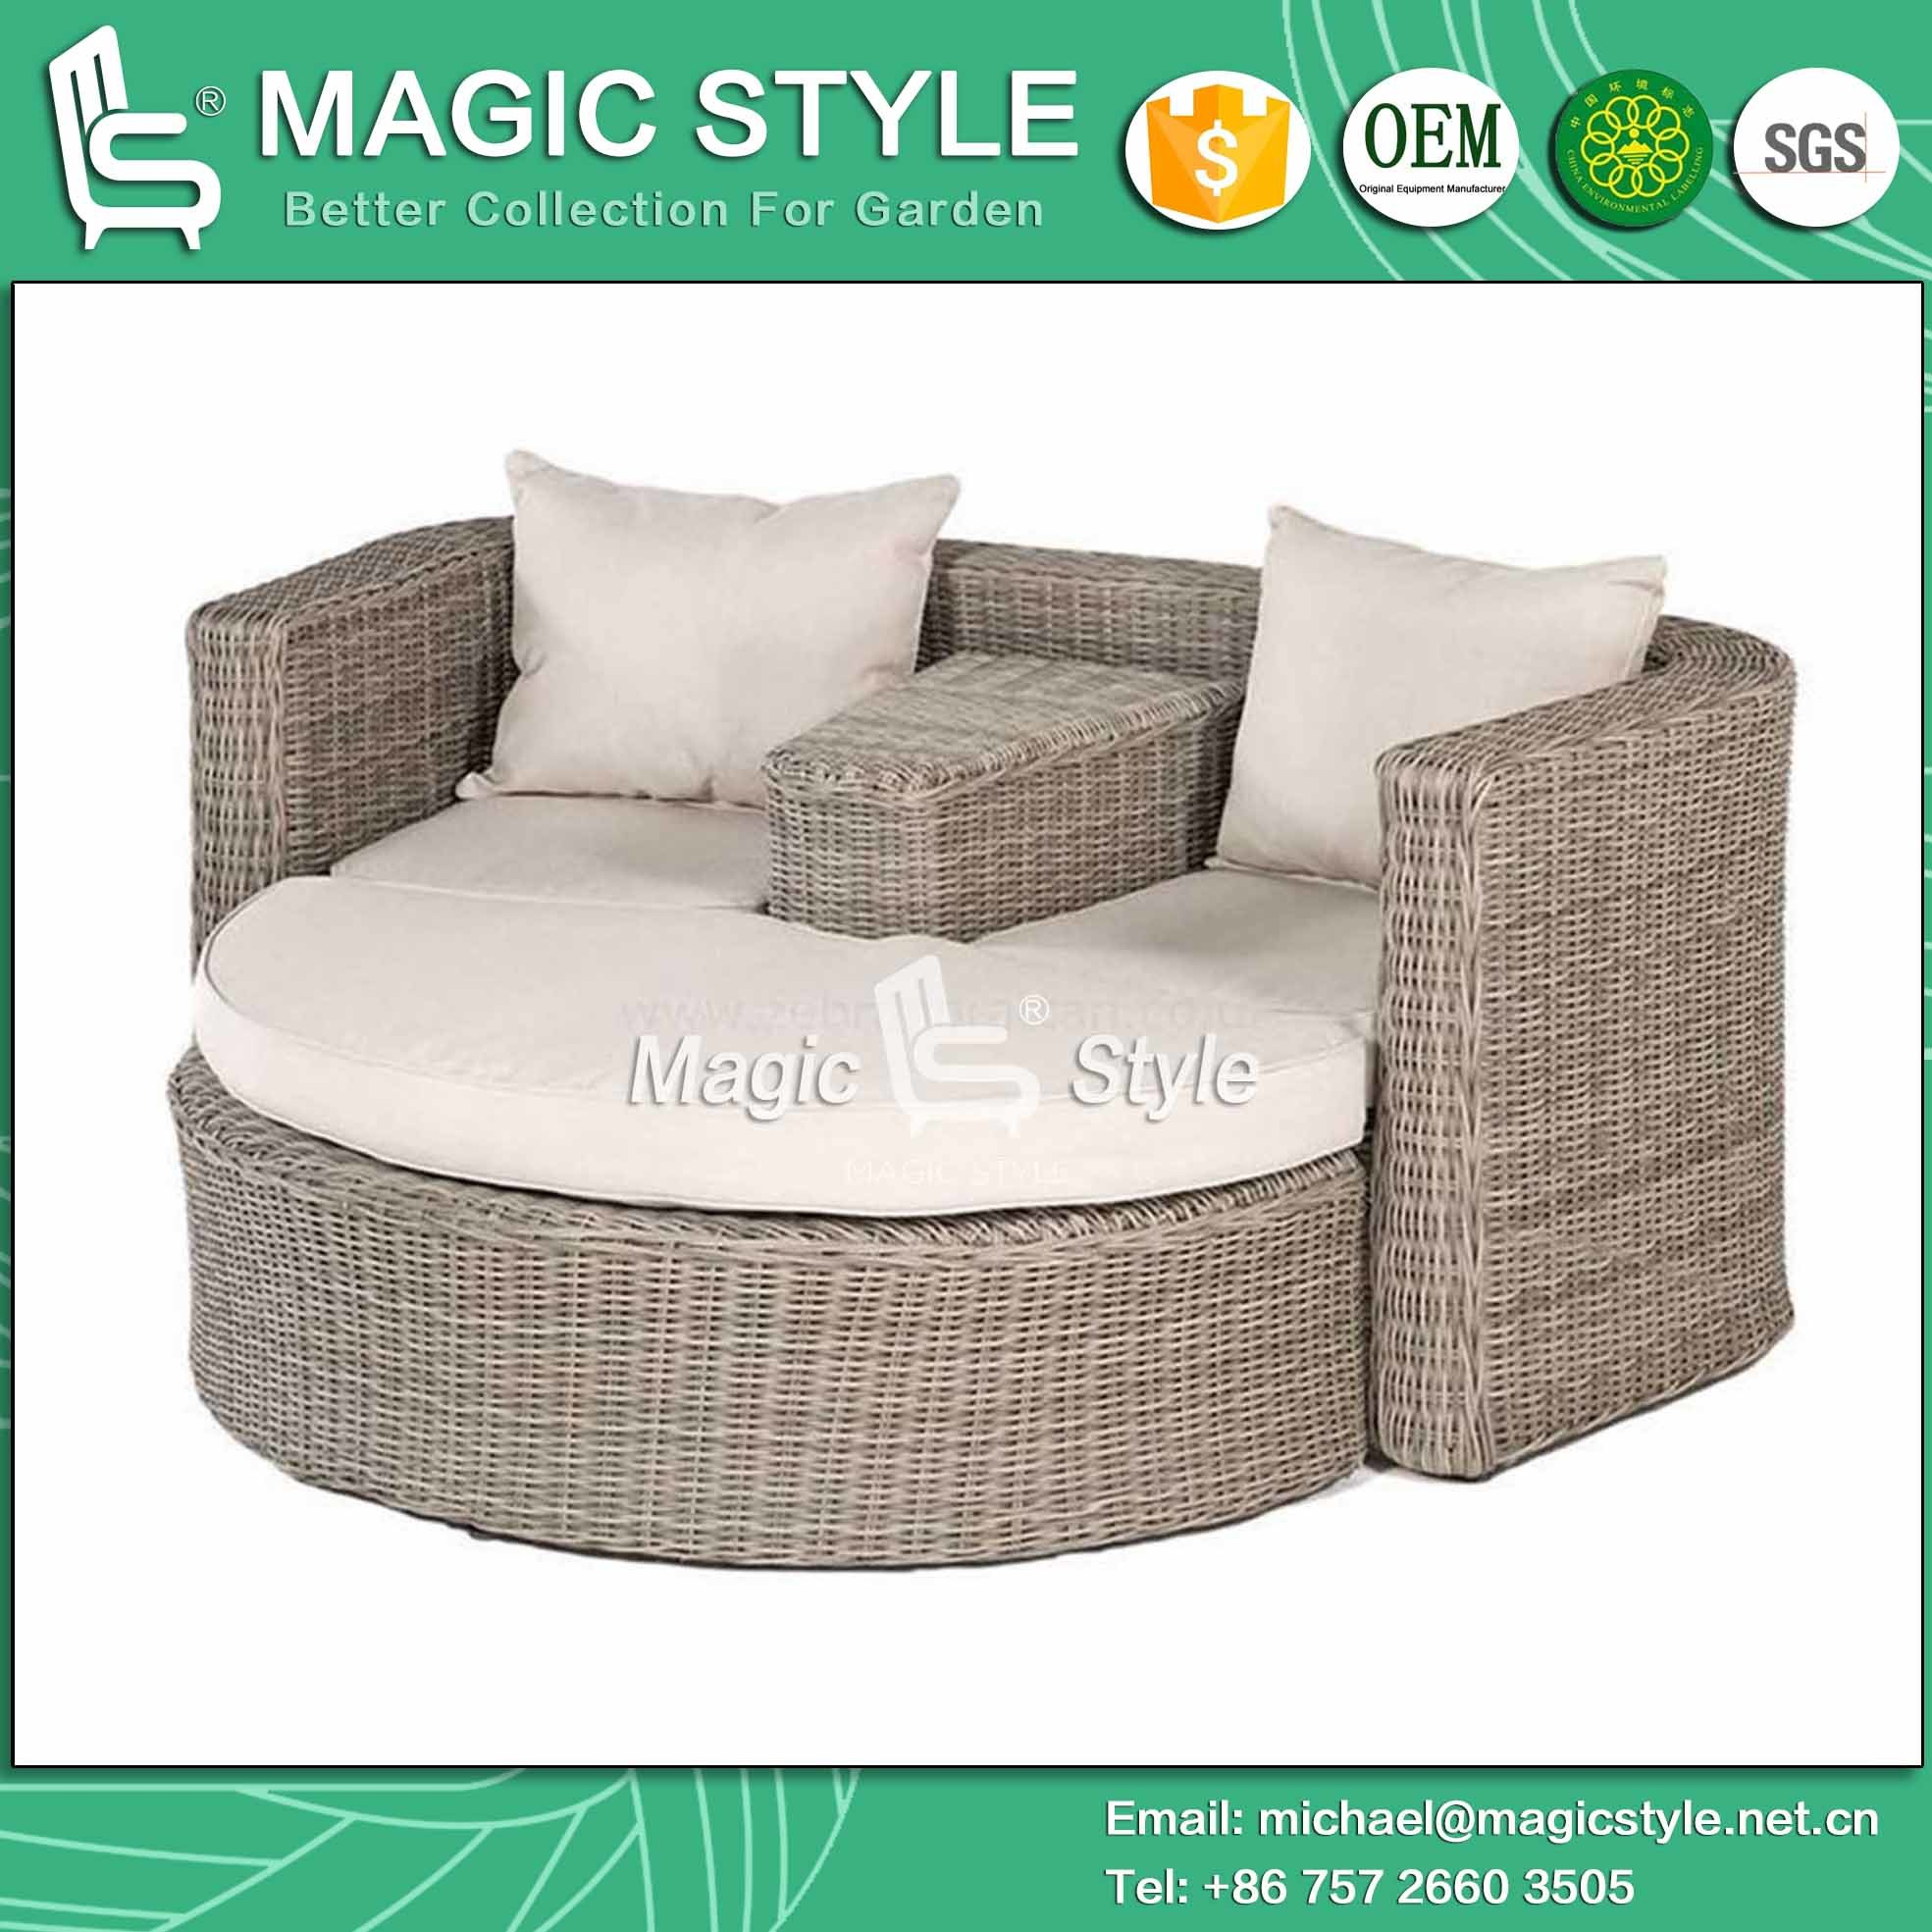 China rattan daybed wicker daybed balcony sunbed bench daybed double sofa leisure daybed outdoor furniture garden furniture magic style china wicker